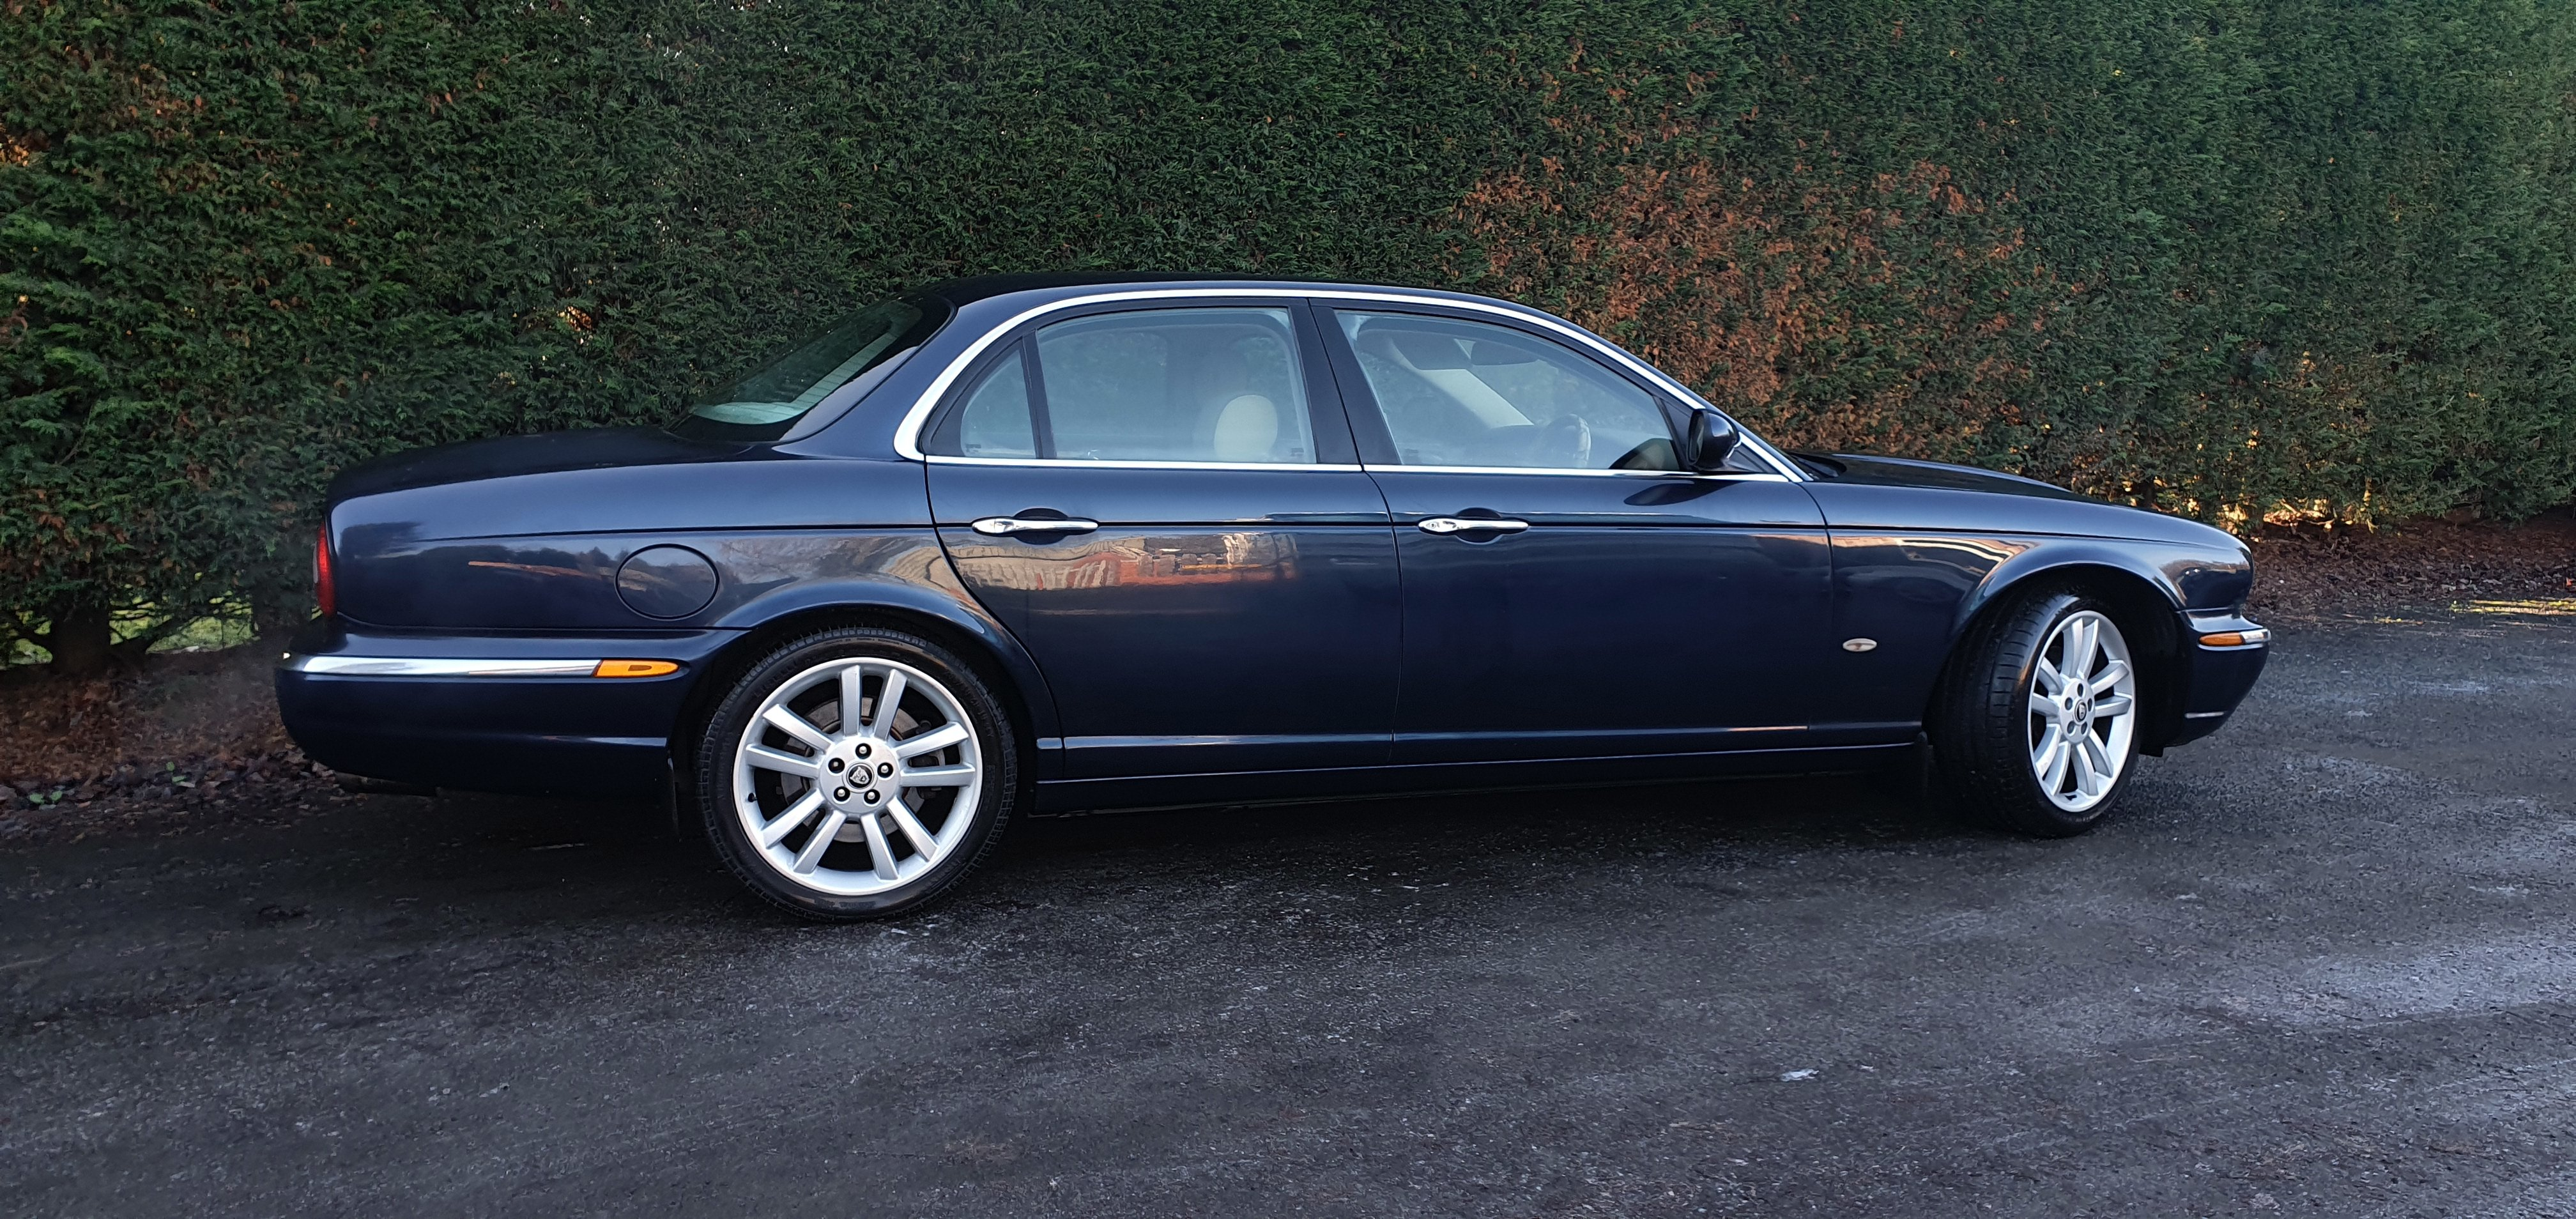 2007 X356 3.0 V6 XJ SOVEREIGN, FULL M/D HISTORY, UK CAR For Sale (picture 2 of 3)